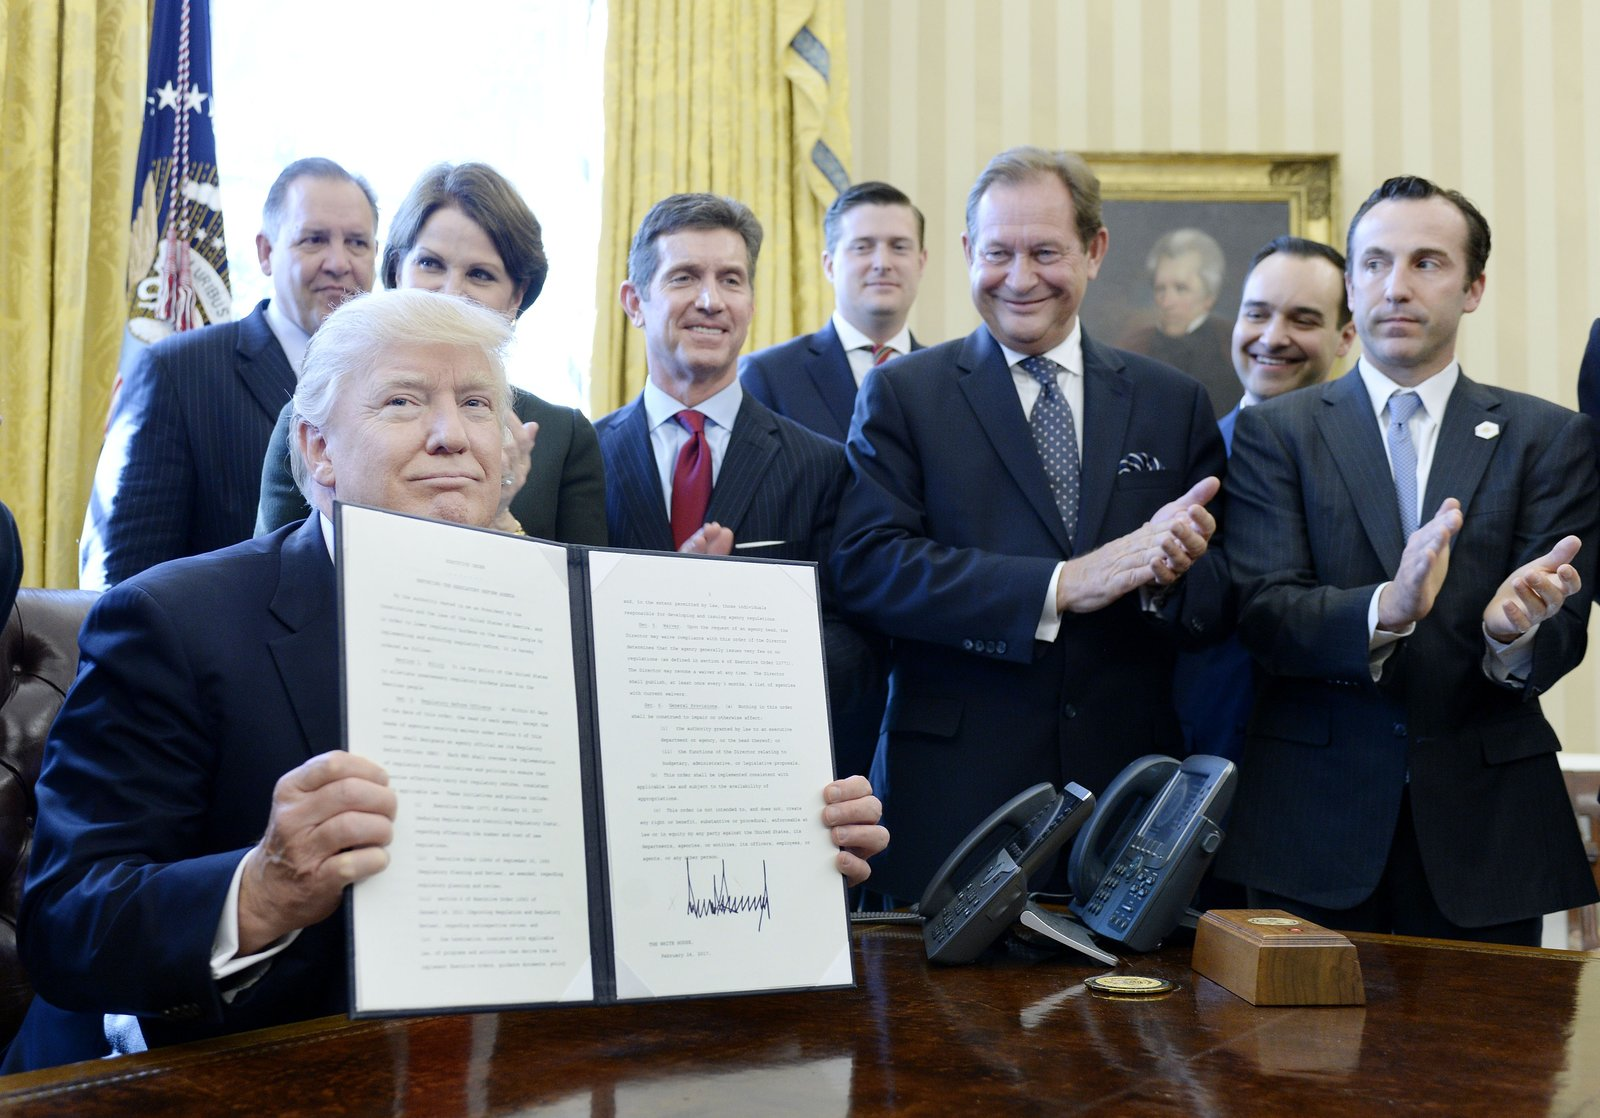 Donald Trump signed an order to roll back federal regulations